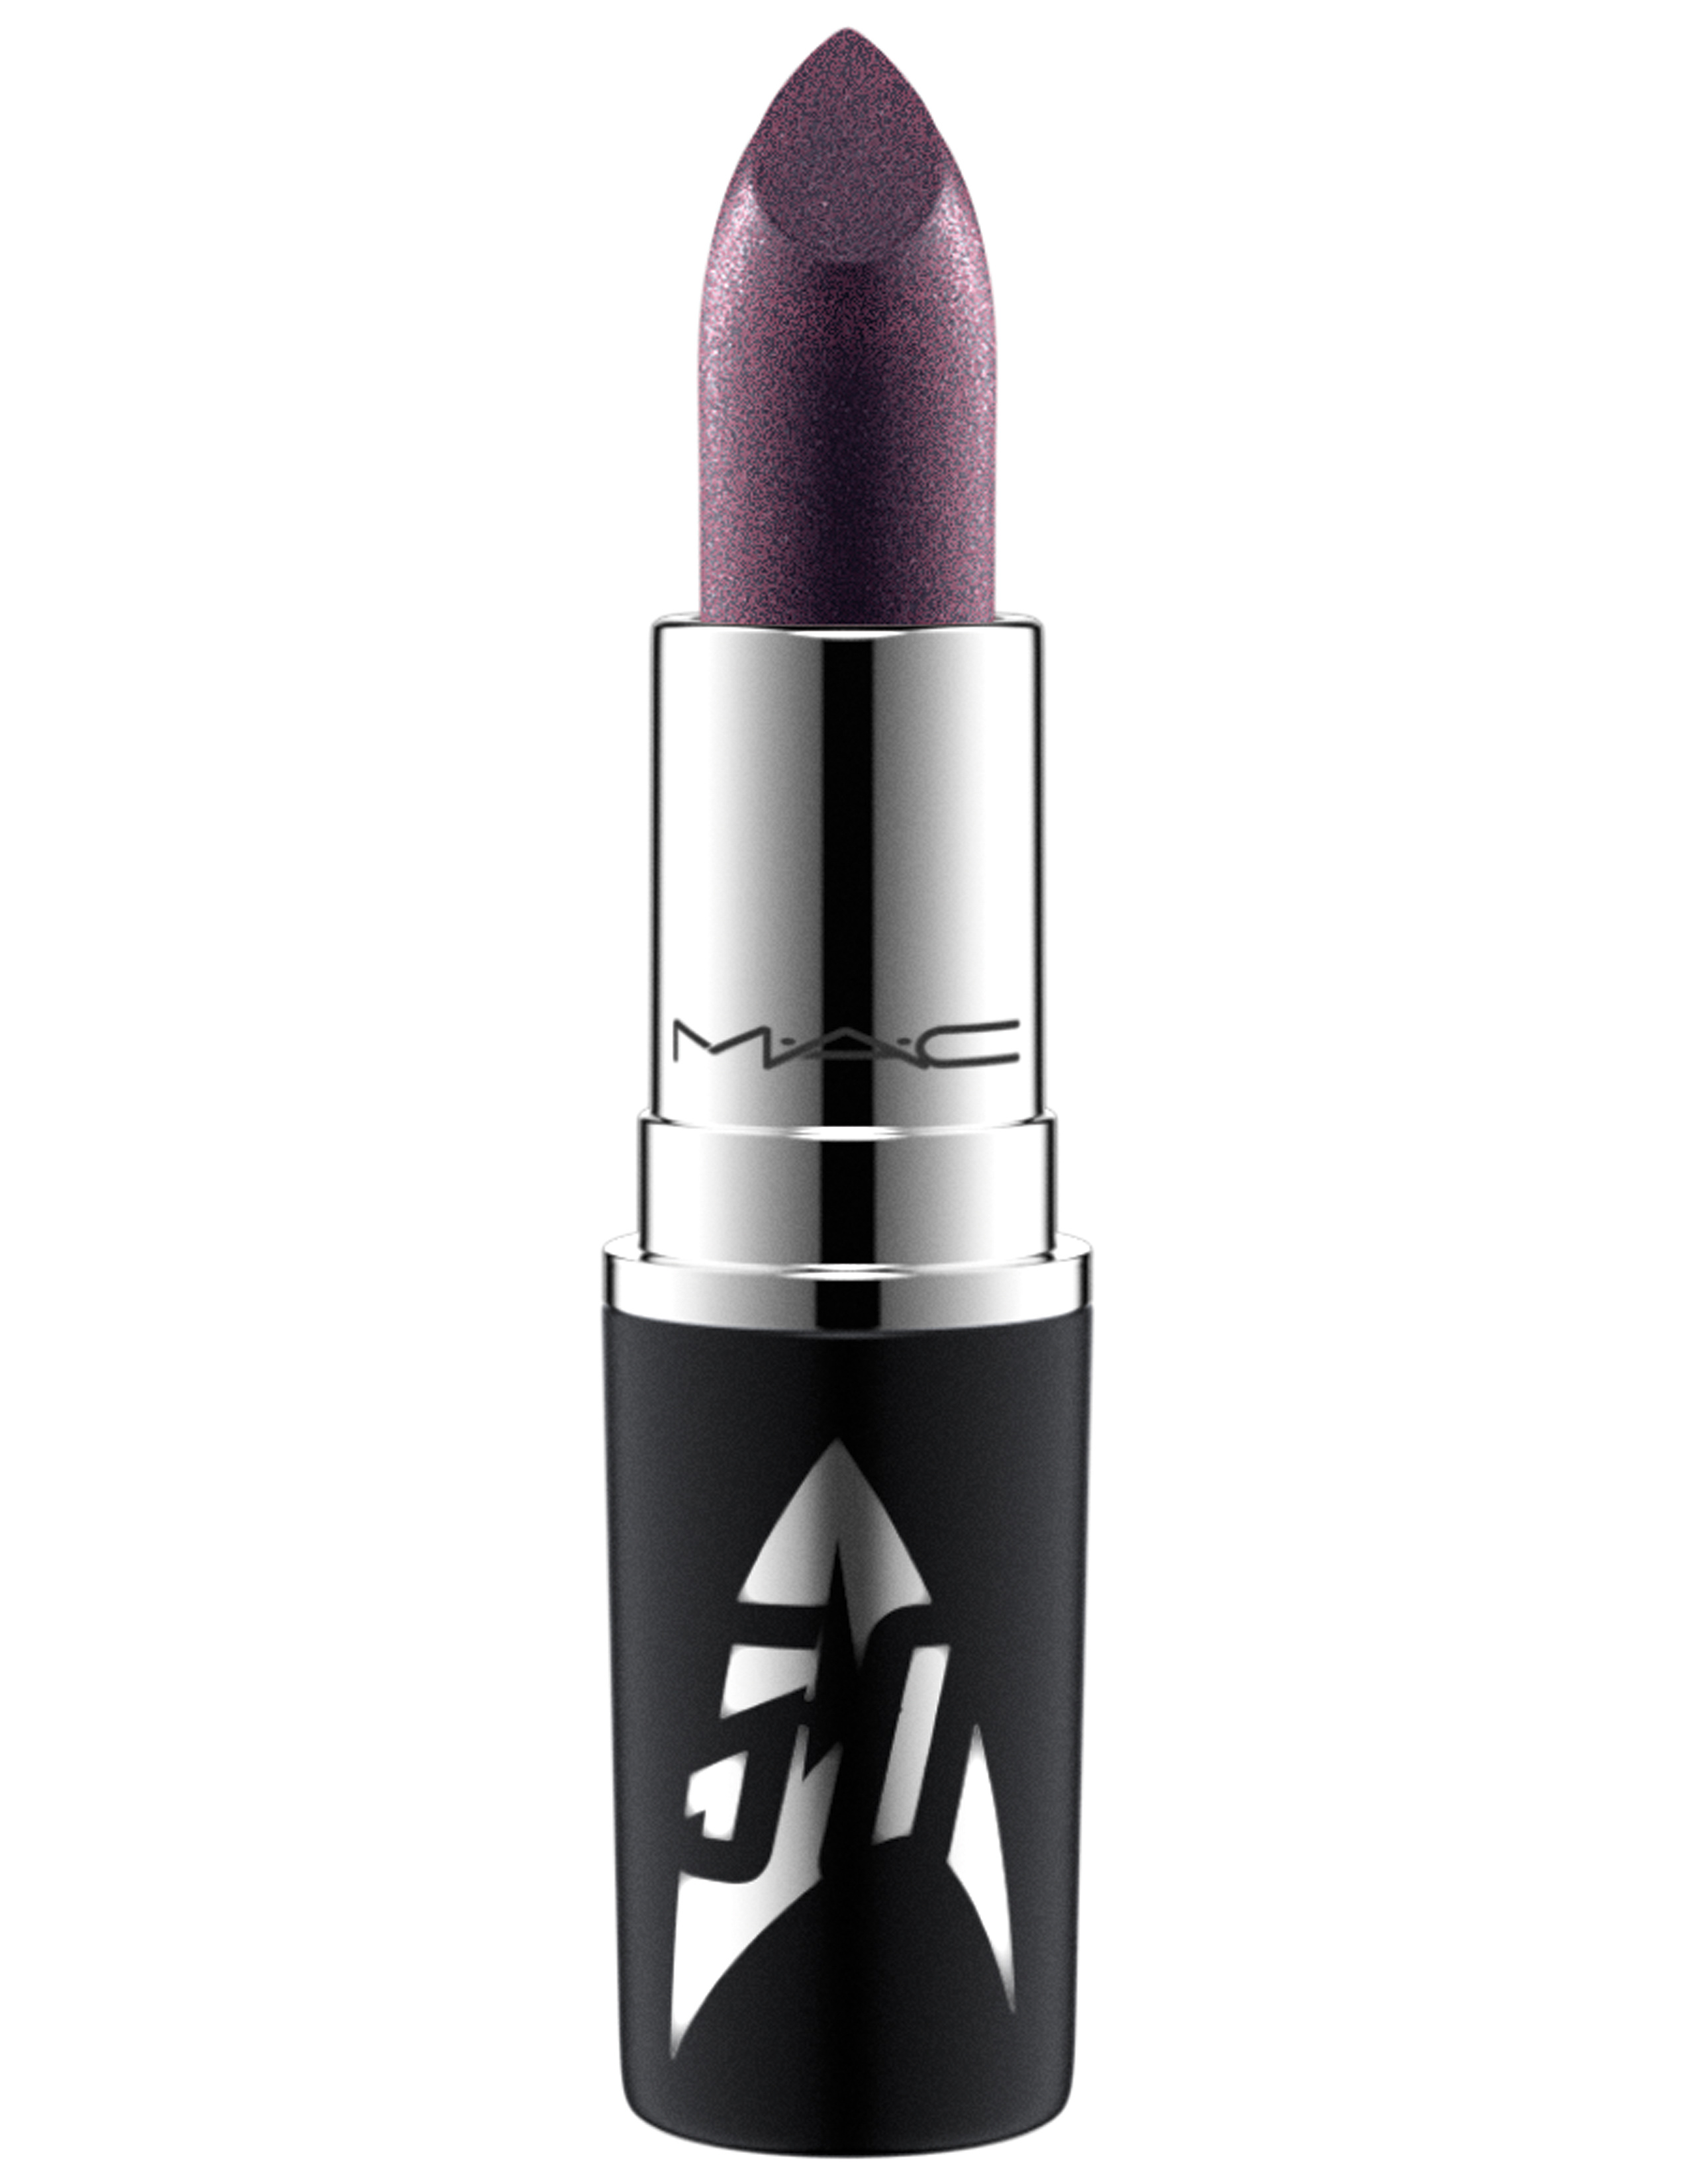 MAC_StarTrek_Lipstick_Kling-It-On_300dpiCMYK_1